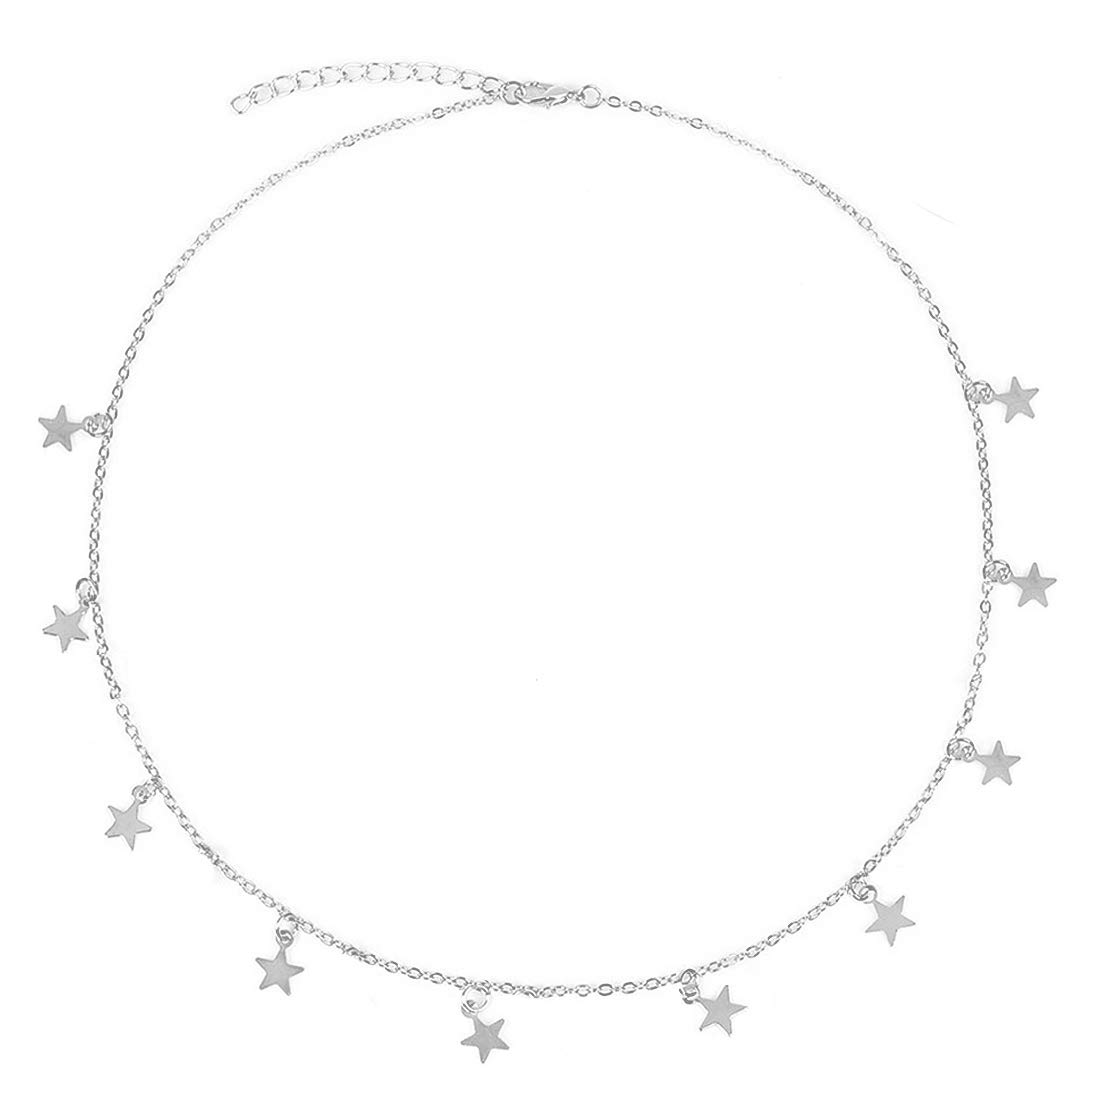 Jauxin Star Choker Necklace for Women 14K Gold Plated Chain - Handmade Polished Jewelry - Mother, Daughter, Sister, Adjustable Lobster Clasp